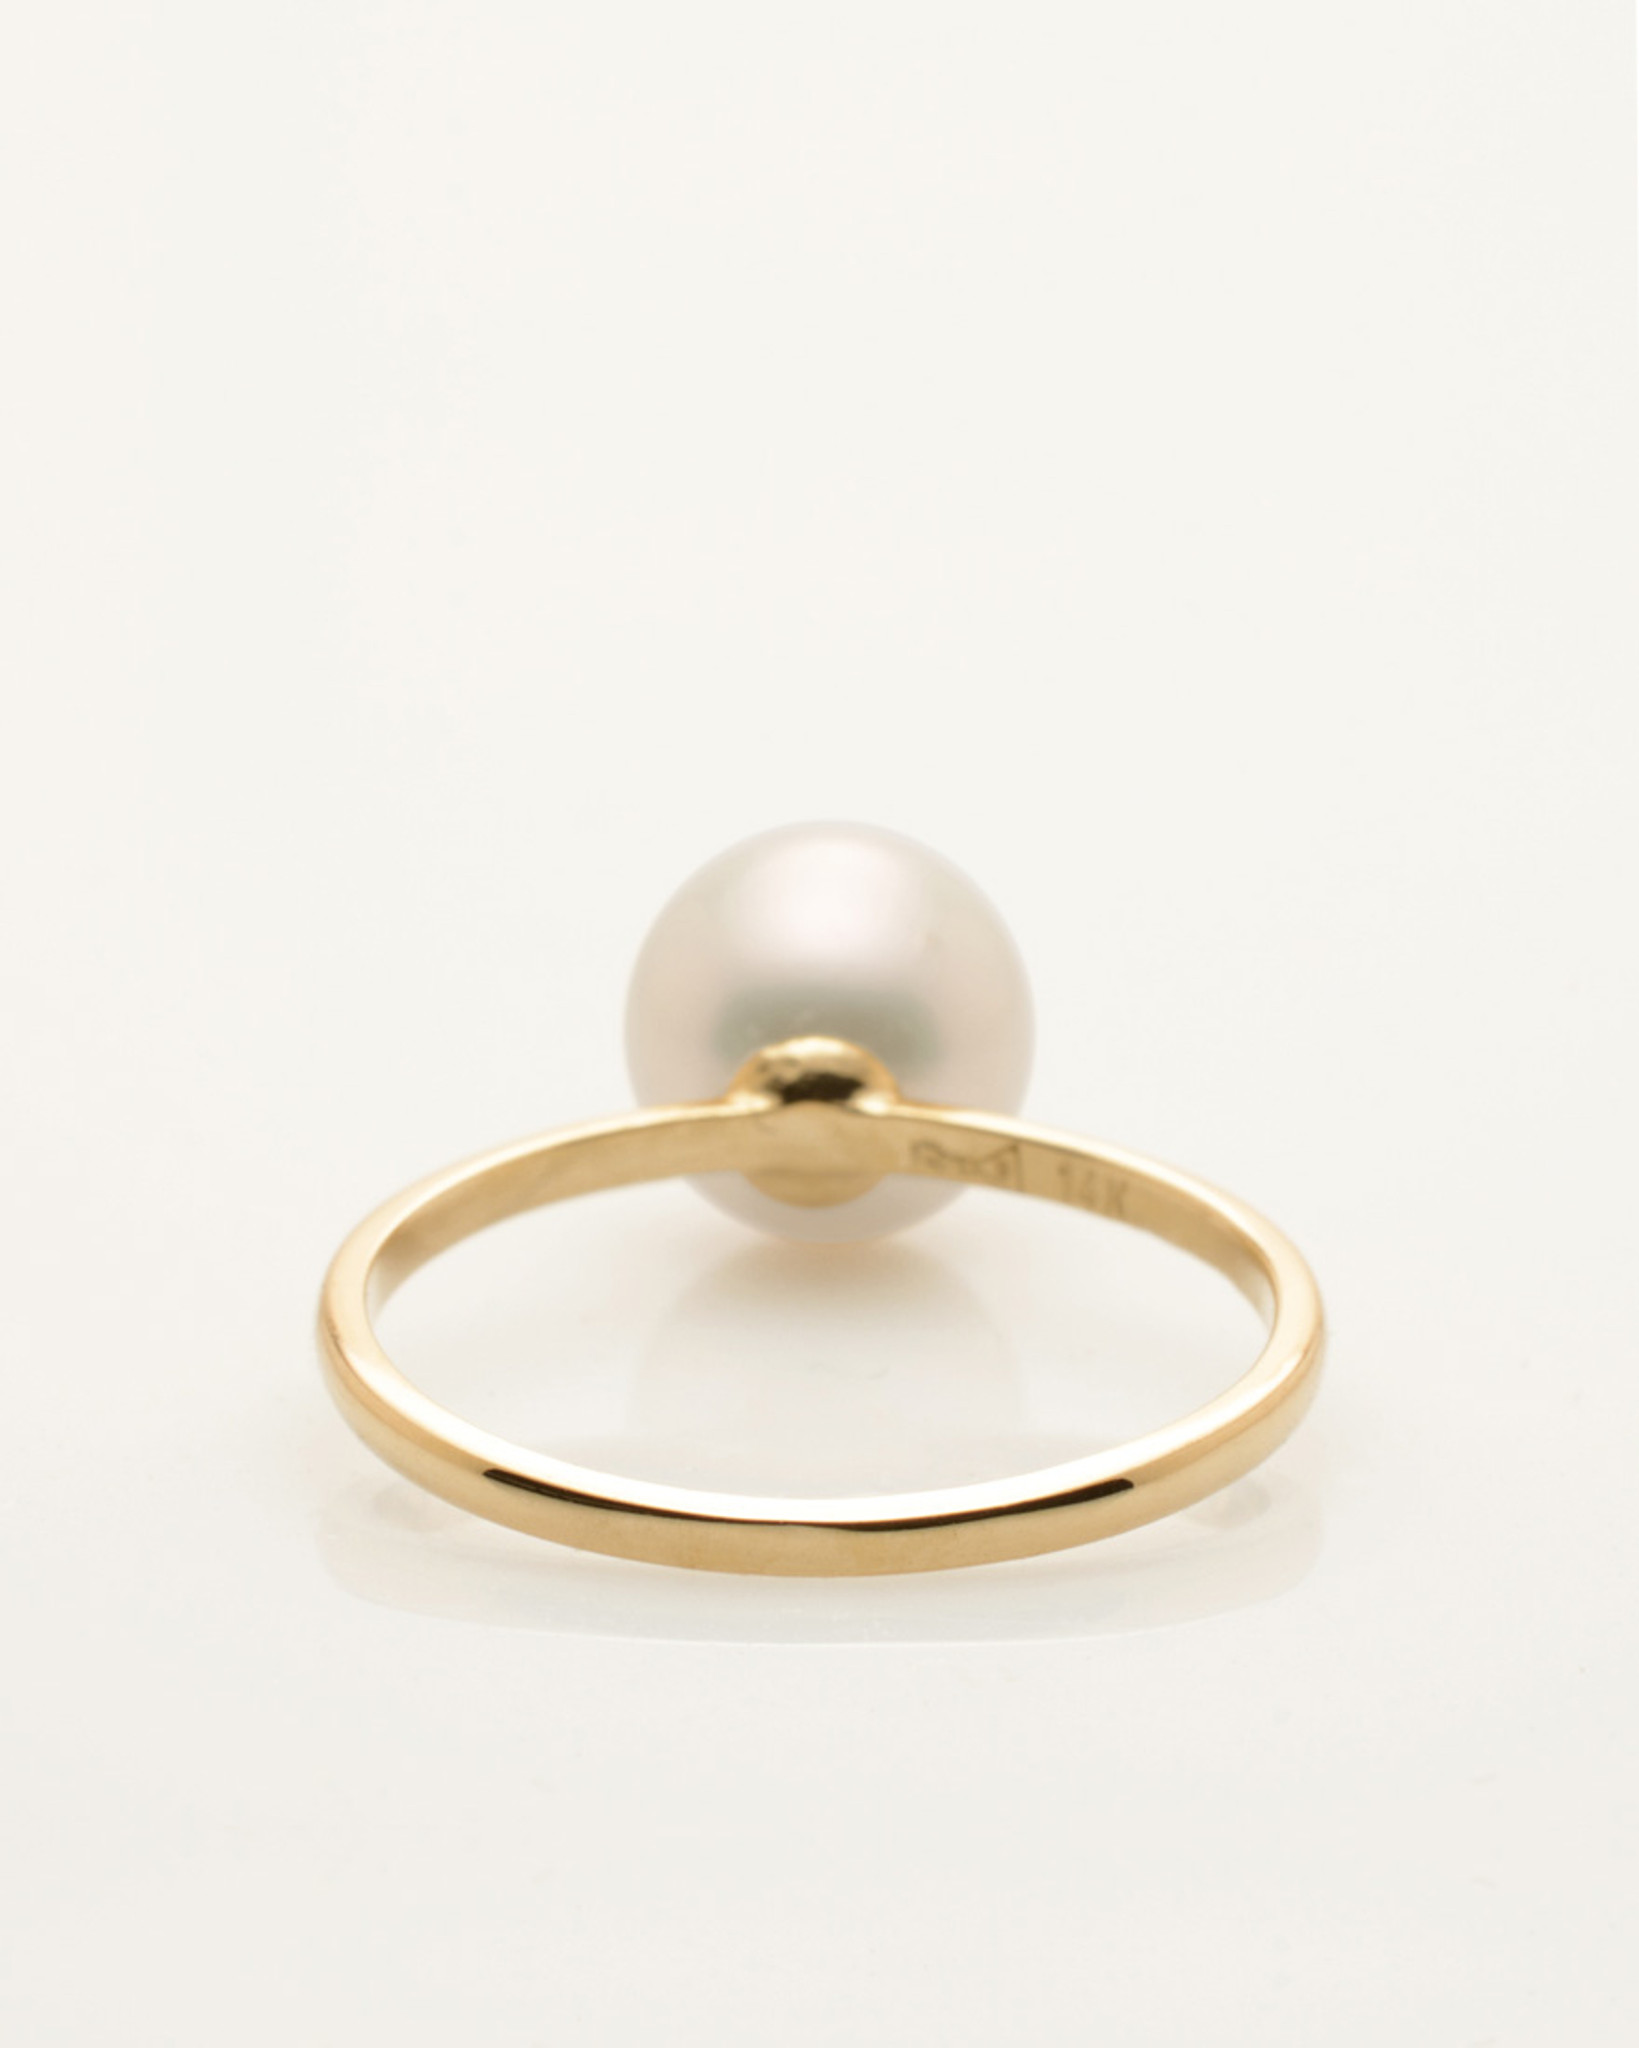 Back View of Cultured Freshwater Pearl Ring with LadyBug Diamond Pave and 14k Gold Band by Jewelry Designer Nektar De Stagni (8-9 mm. Size-5-6-7)